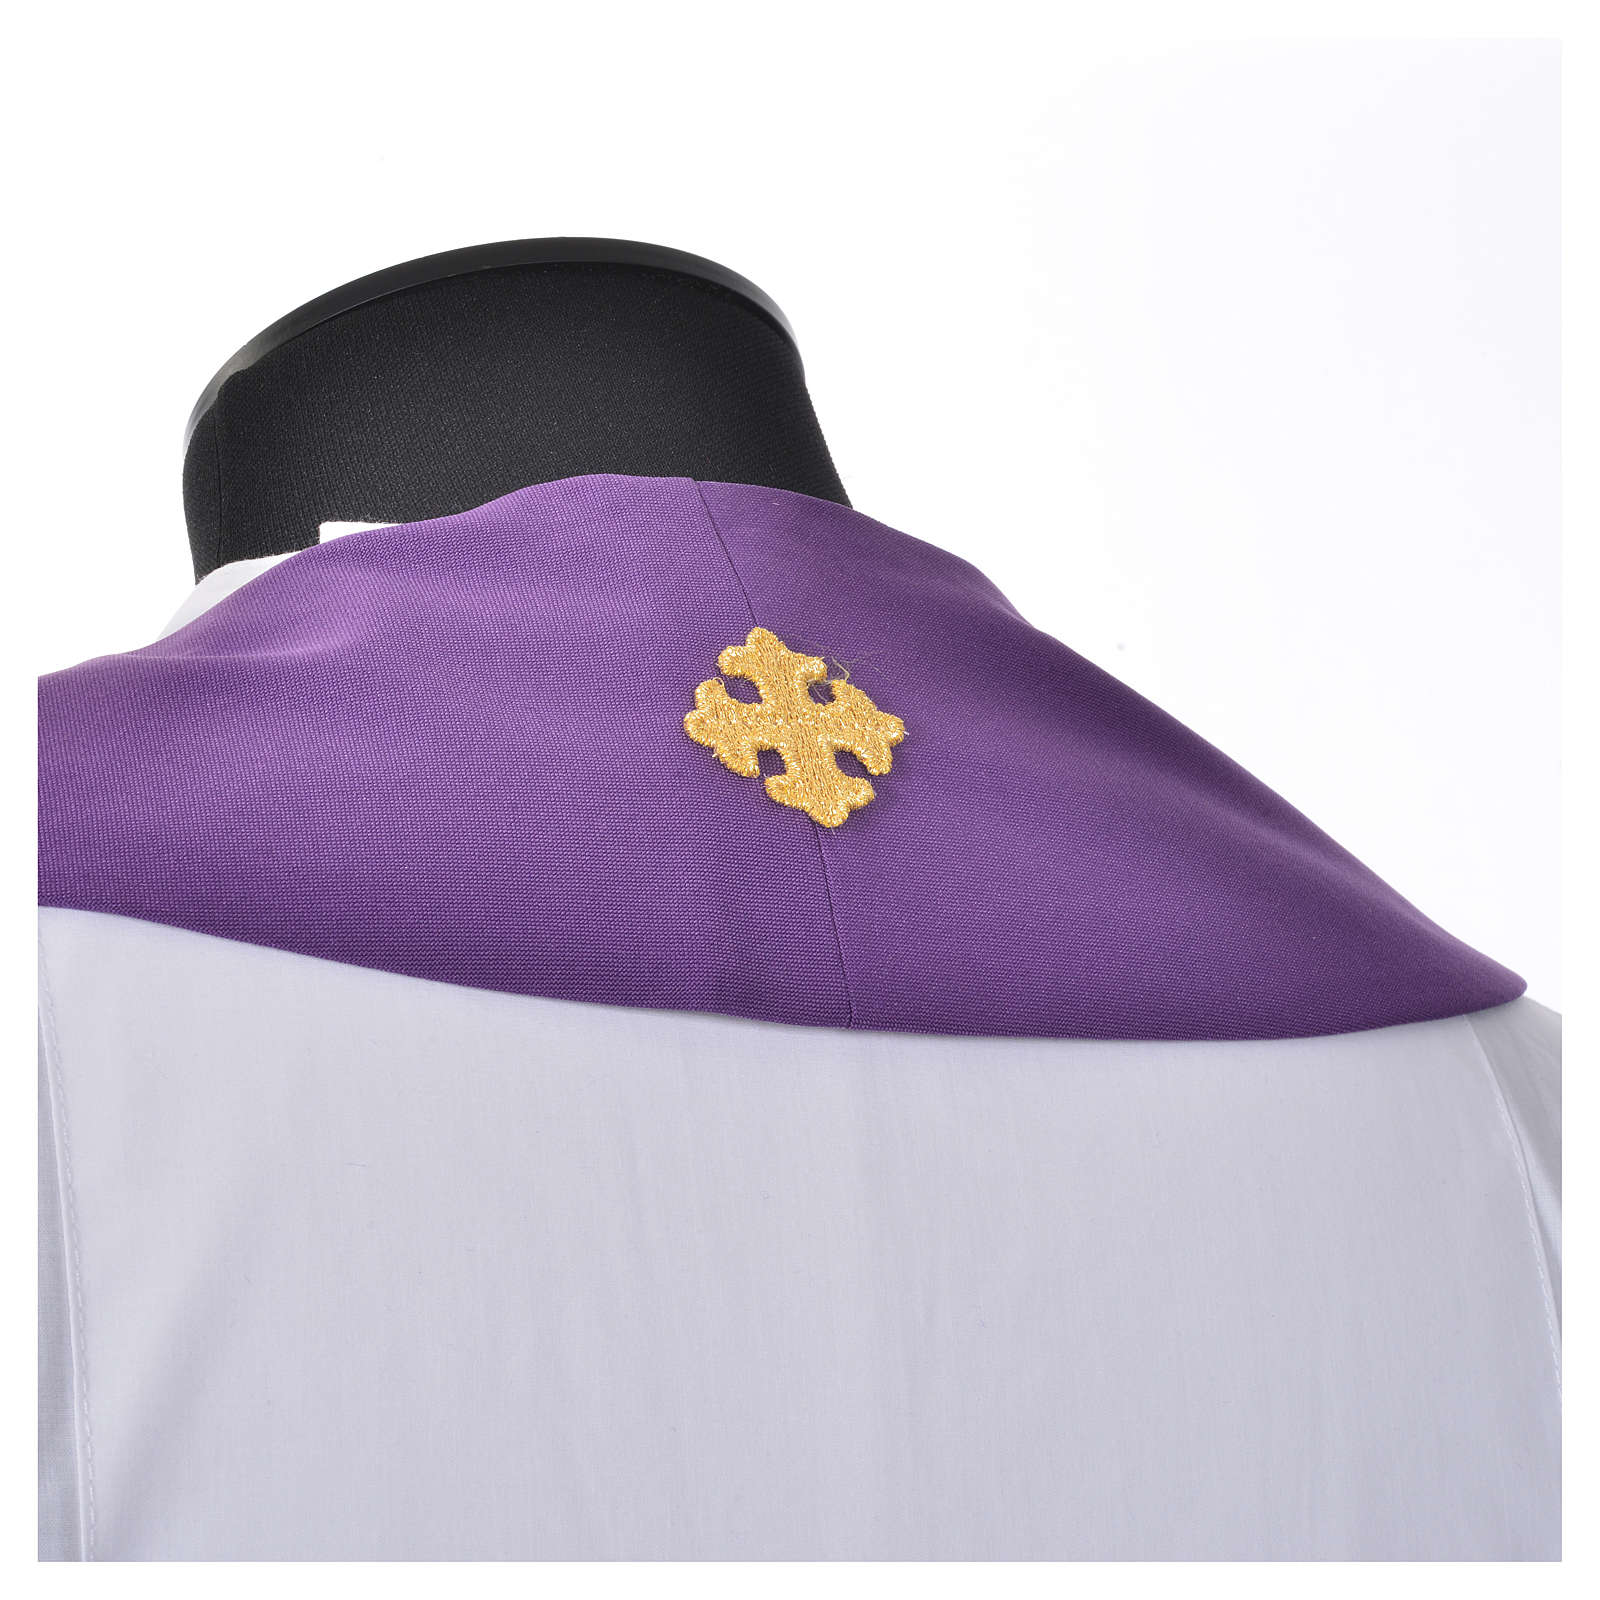 Stole, 80% polyester 20% wool with chalice grapes decoration 4